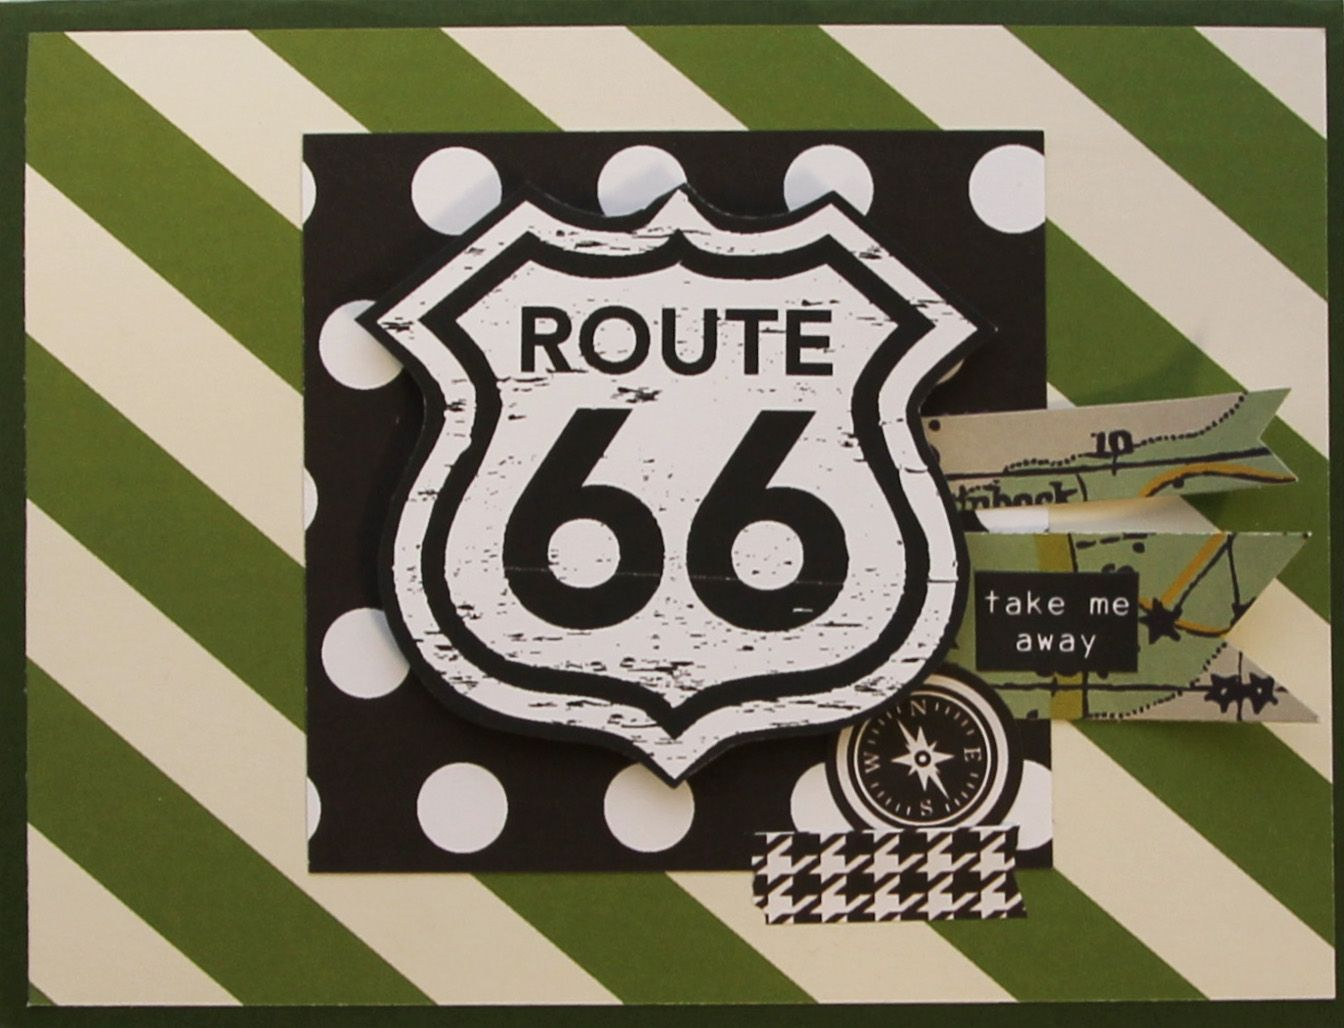 How to scrapbook yahoo - Route 66 Scrapbook Yahoo Search Results Yahoo Image Search Results